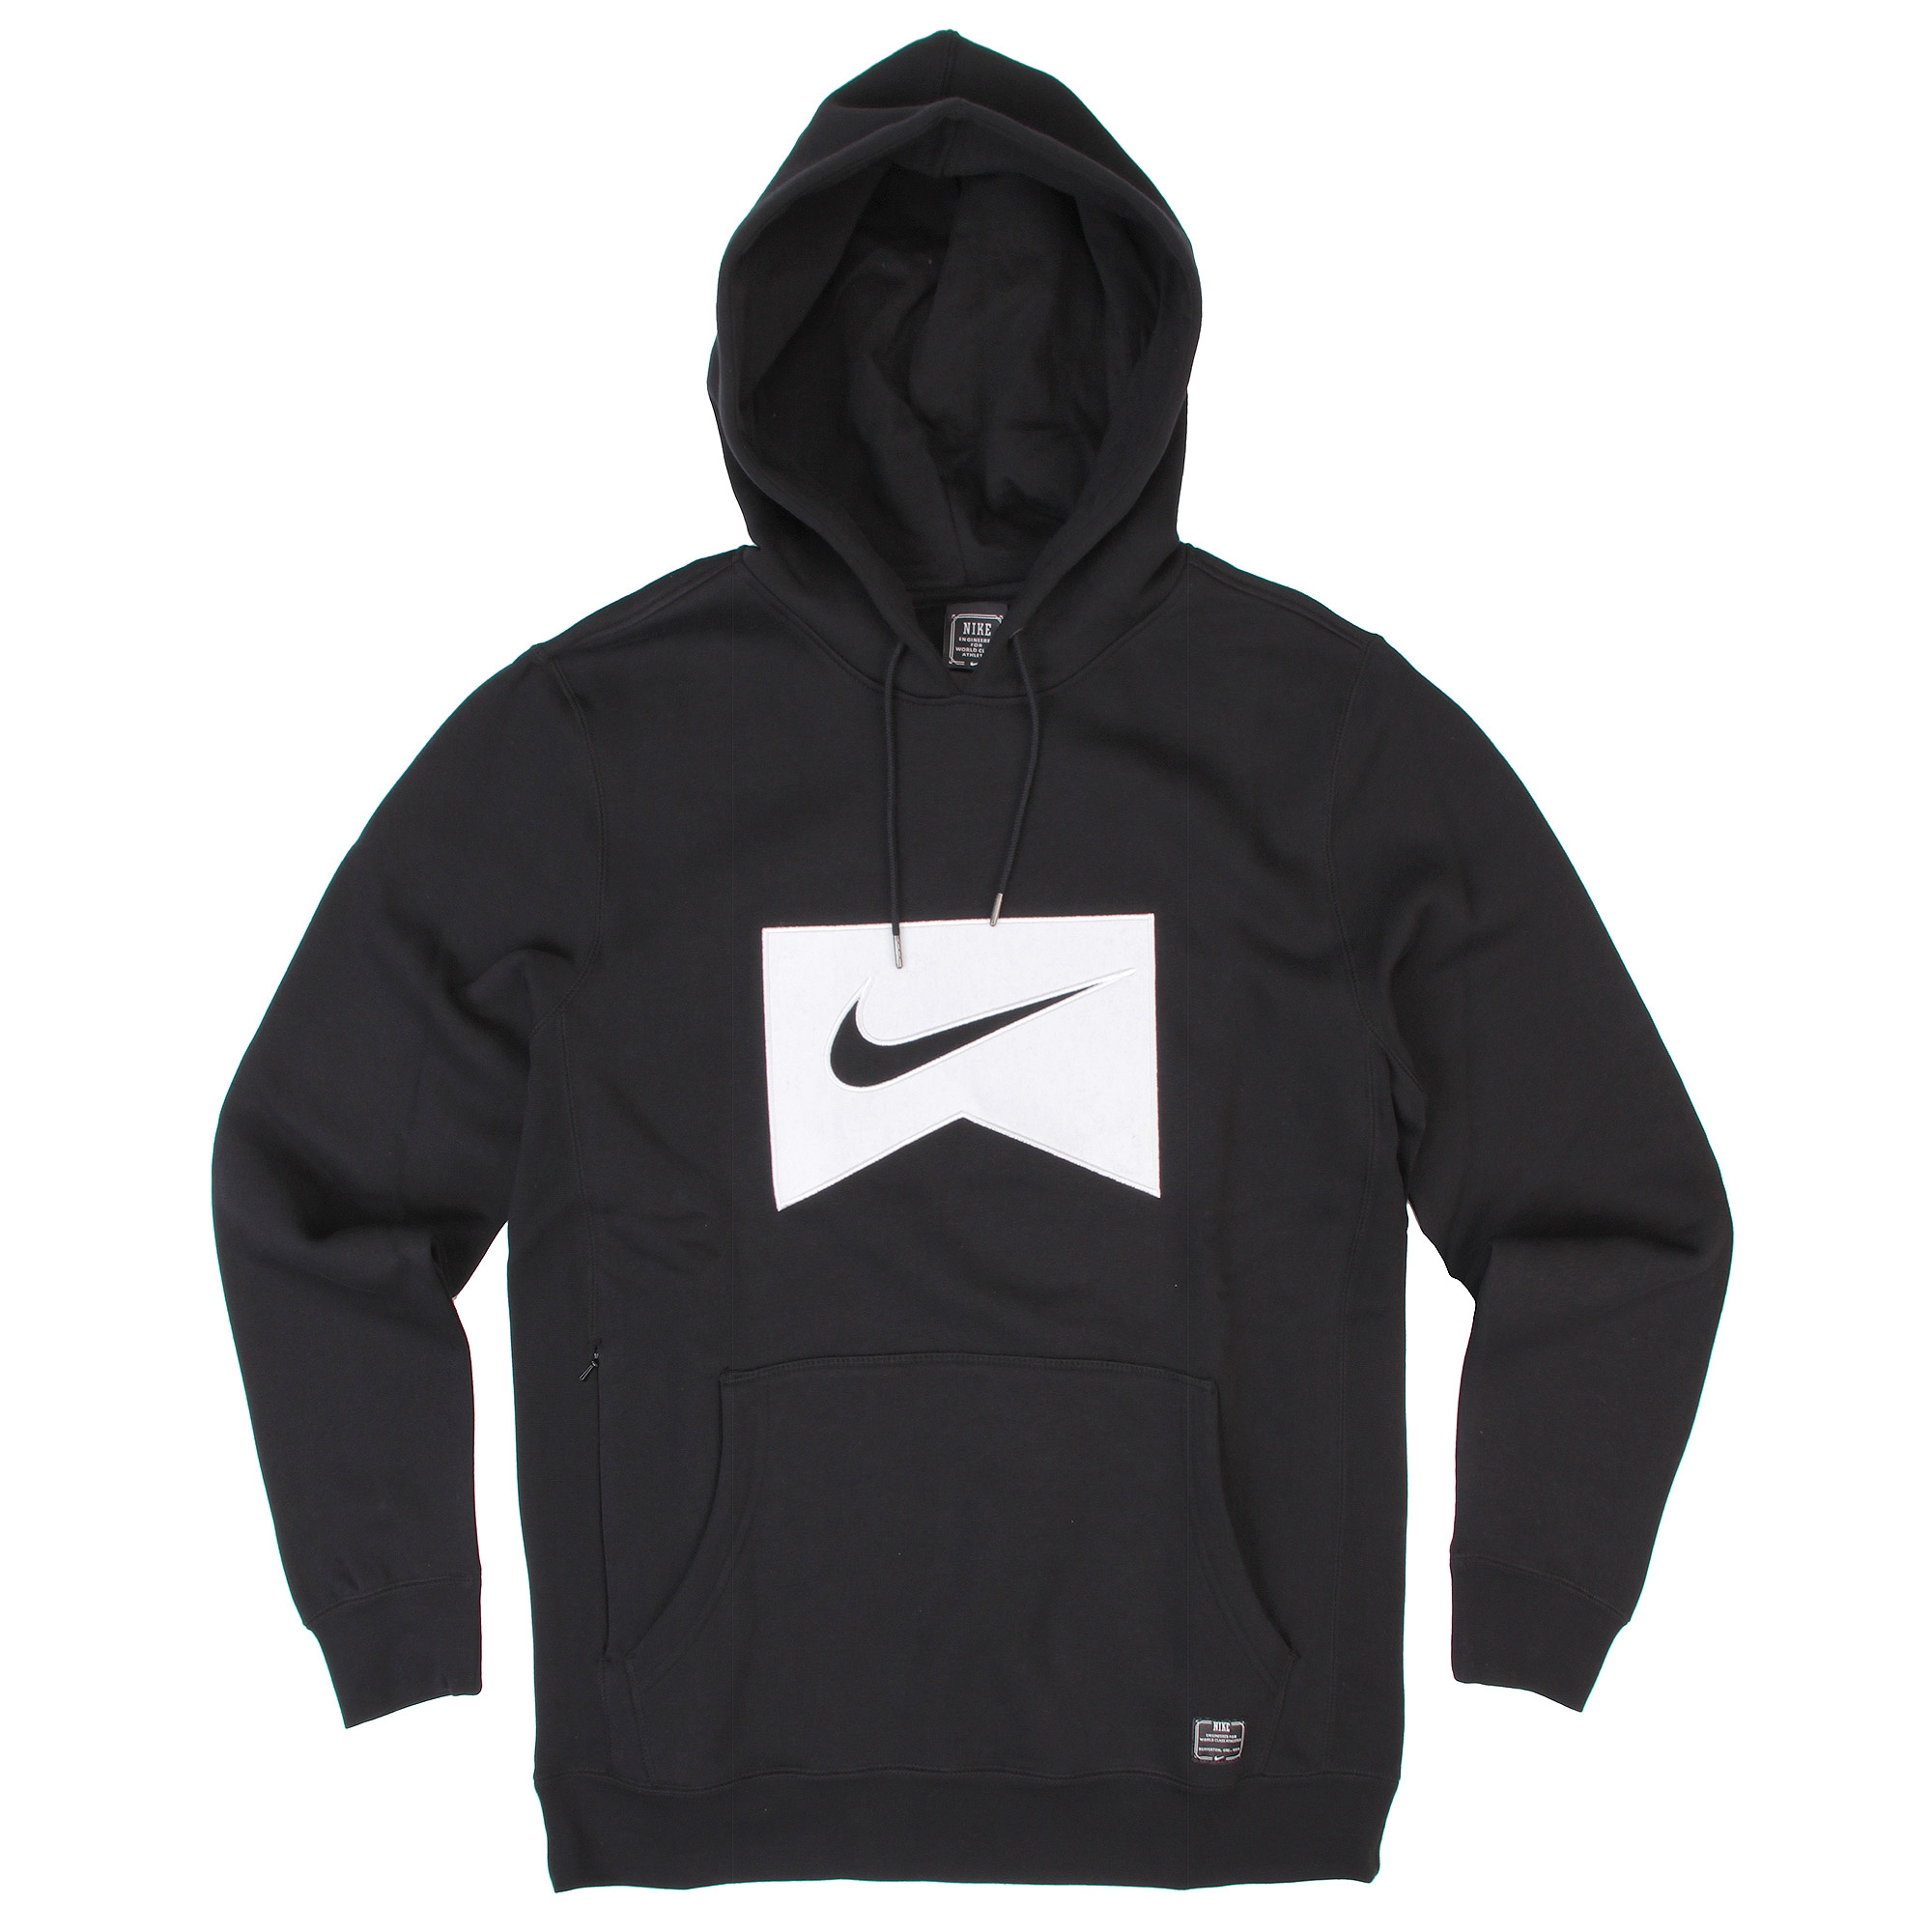 Nike Snowboarding Hoodie Nike action northrup icon po